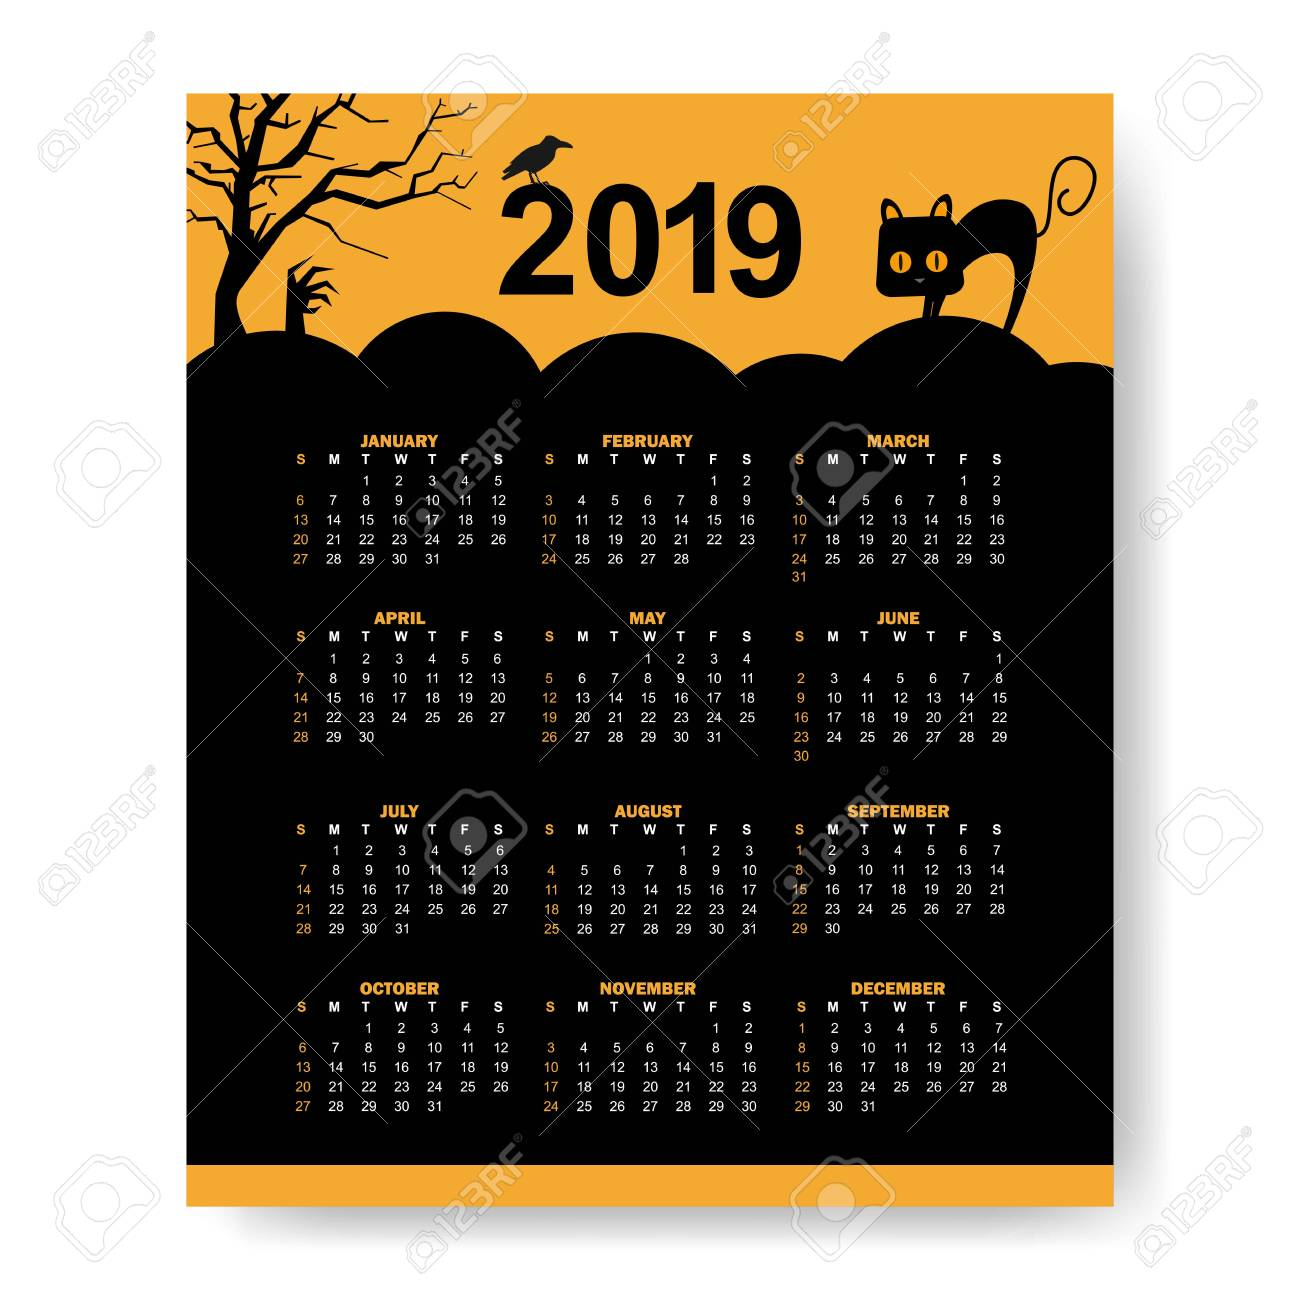 Halloween 2019 Calendar Calendar 2019 Halloween Theme Design Template Vector Illustration